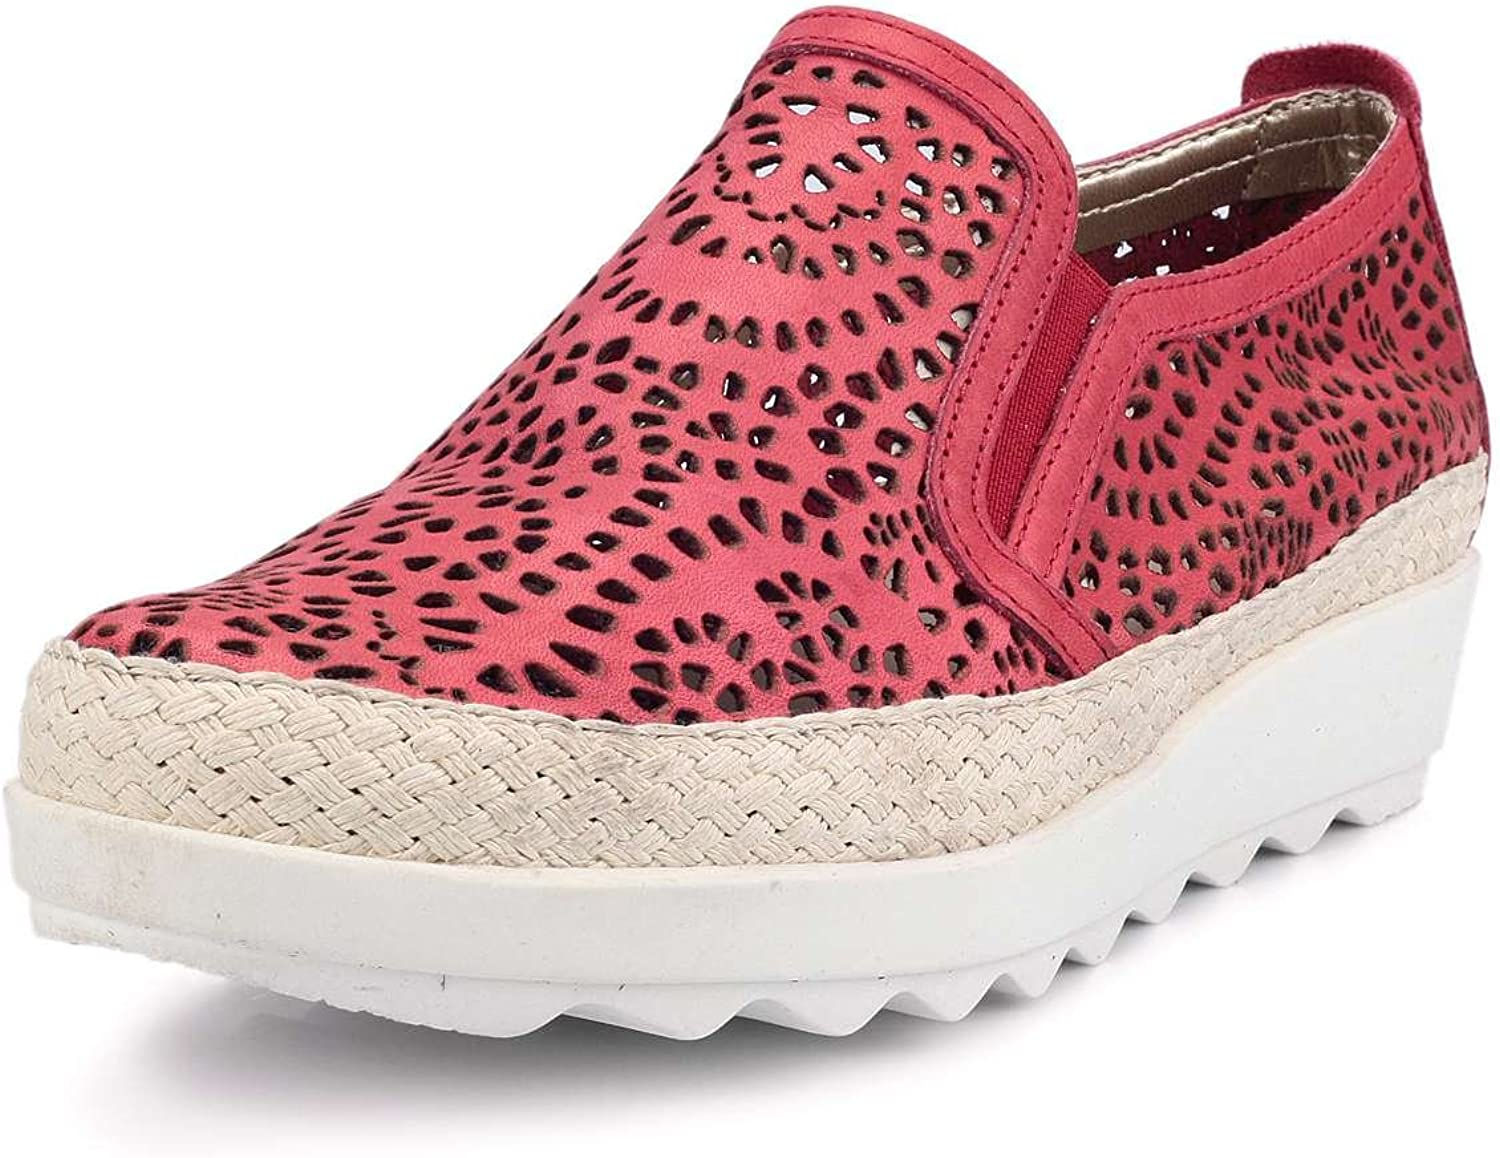 The Flexx Women's shoes Moccasins A158 43 Call ME Cherry